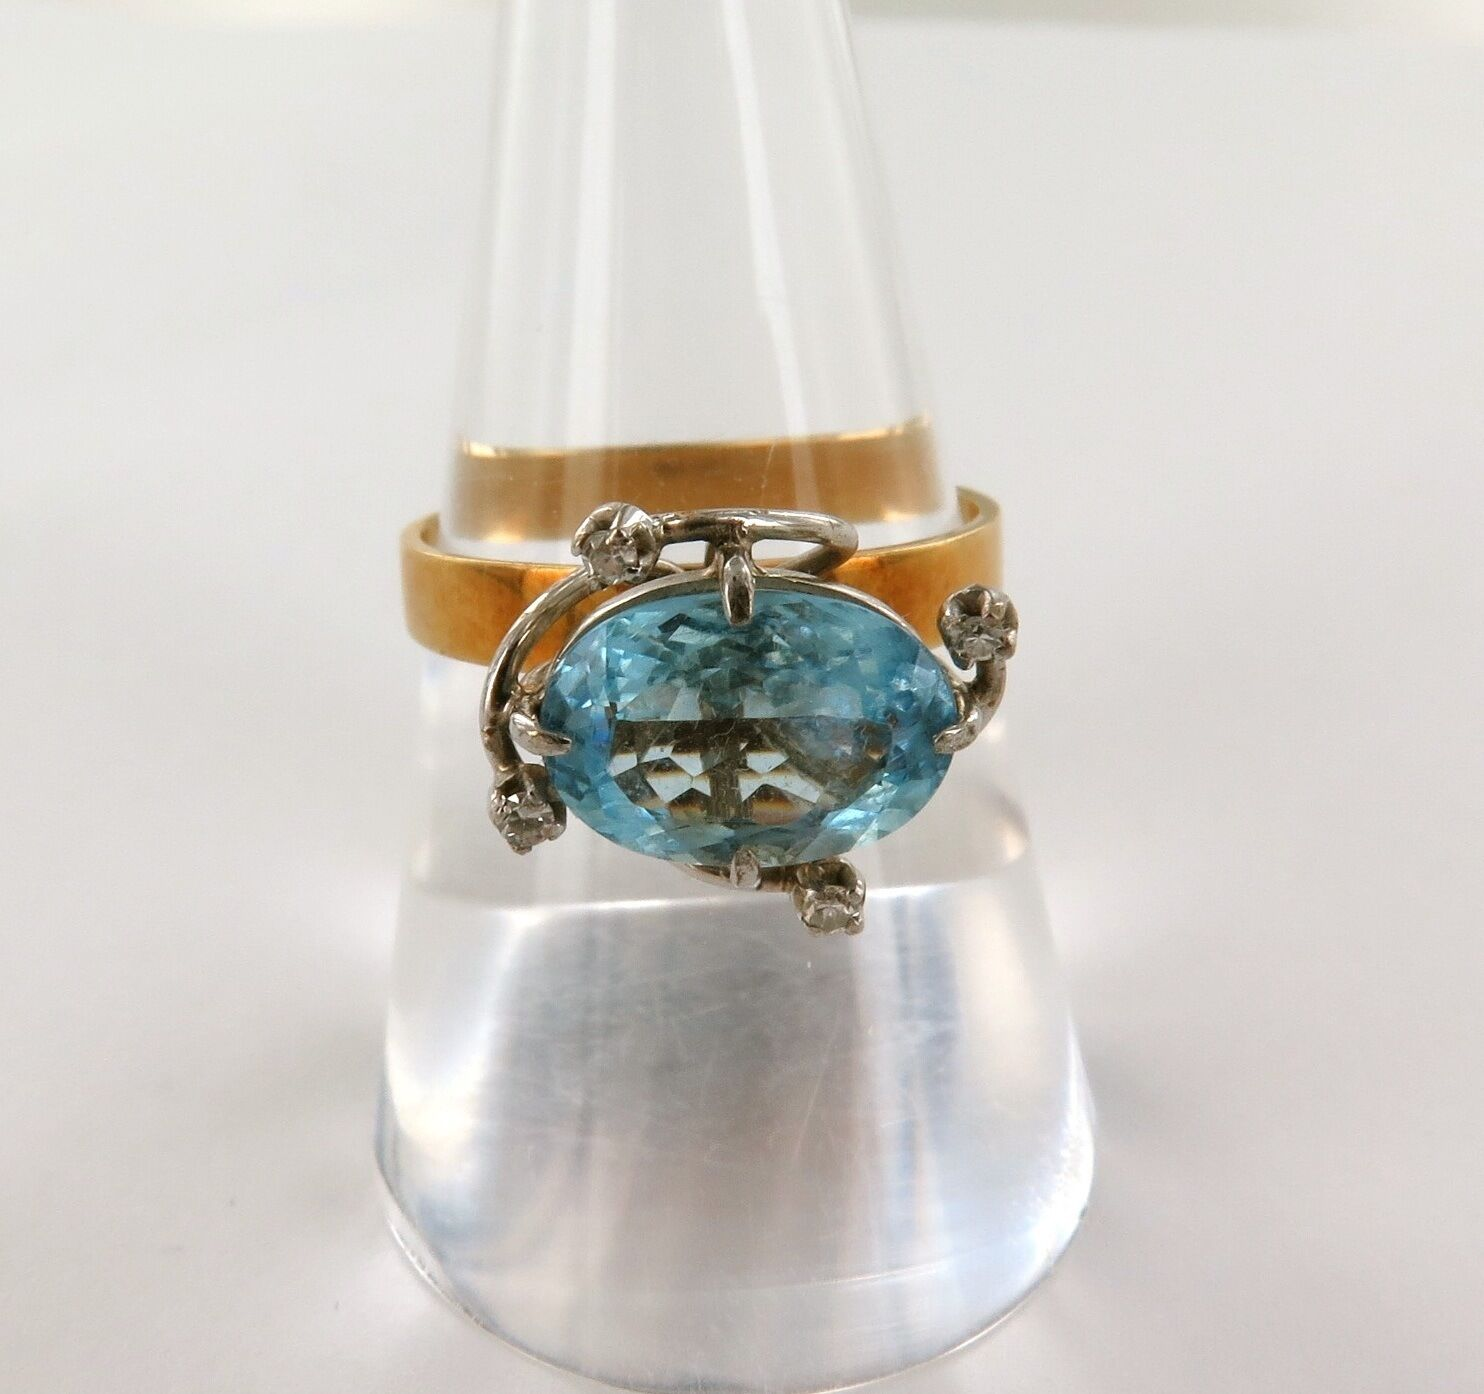 .AN 18CT gold, DIAMOND & LARGE AQUAMARINE RING WITH VALUATION OF  3925